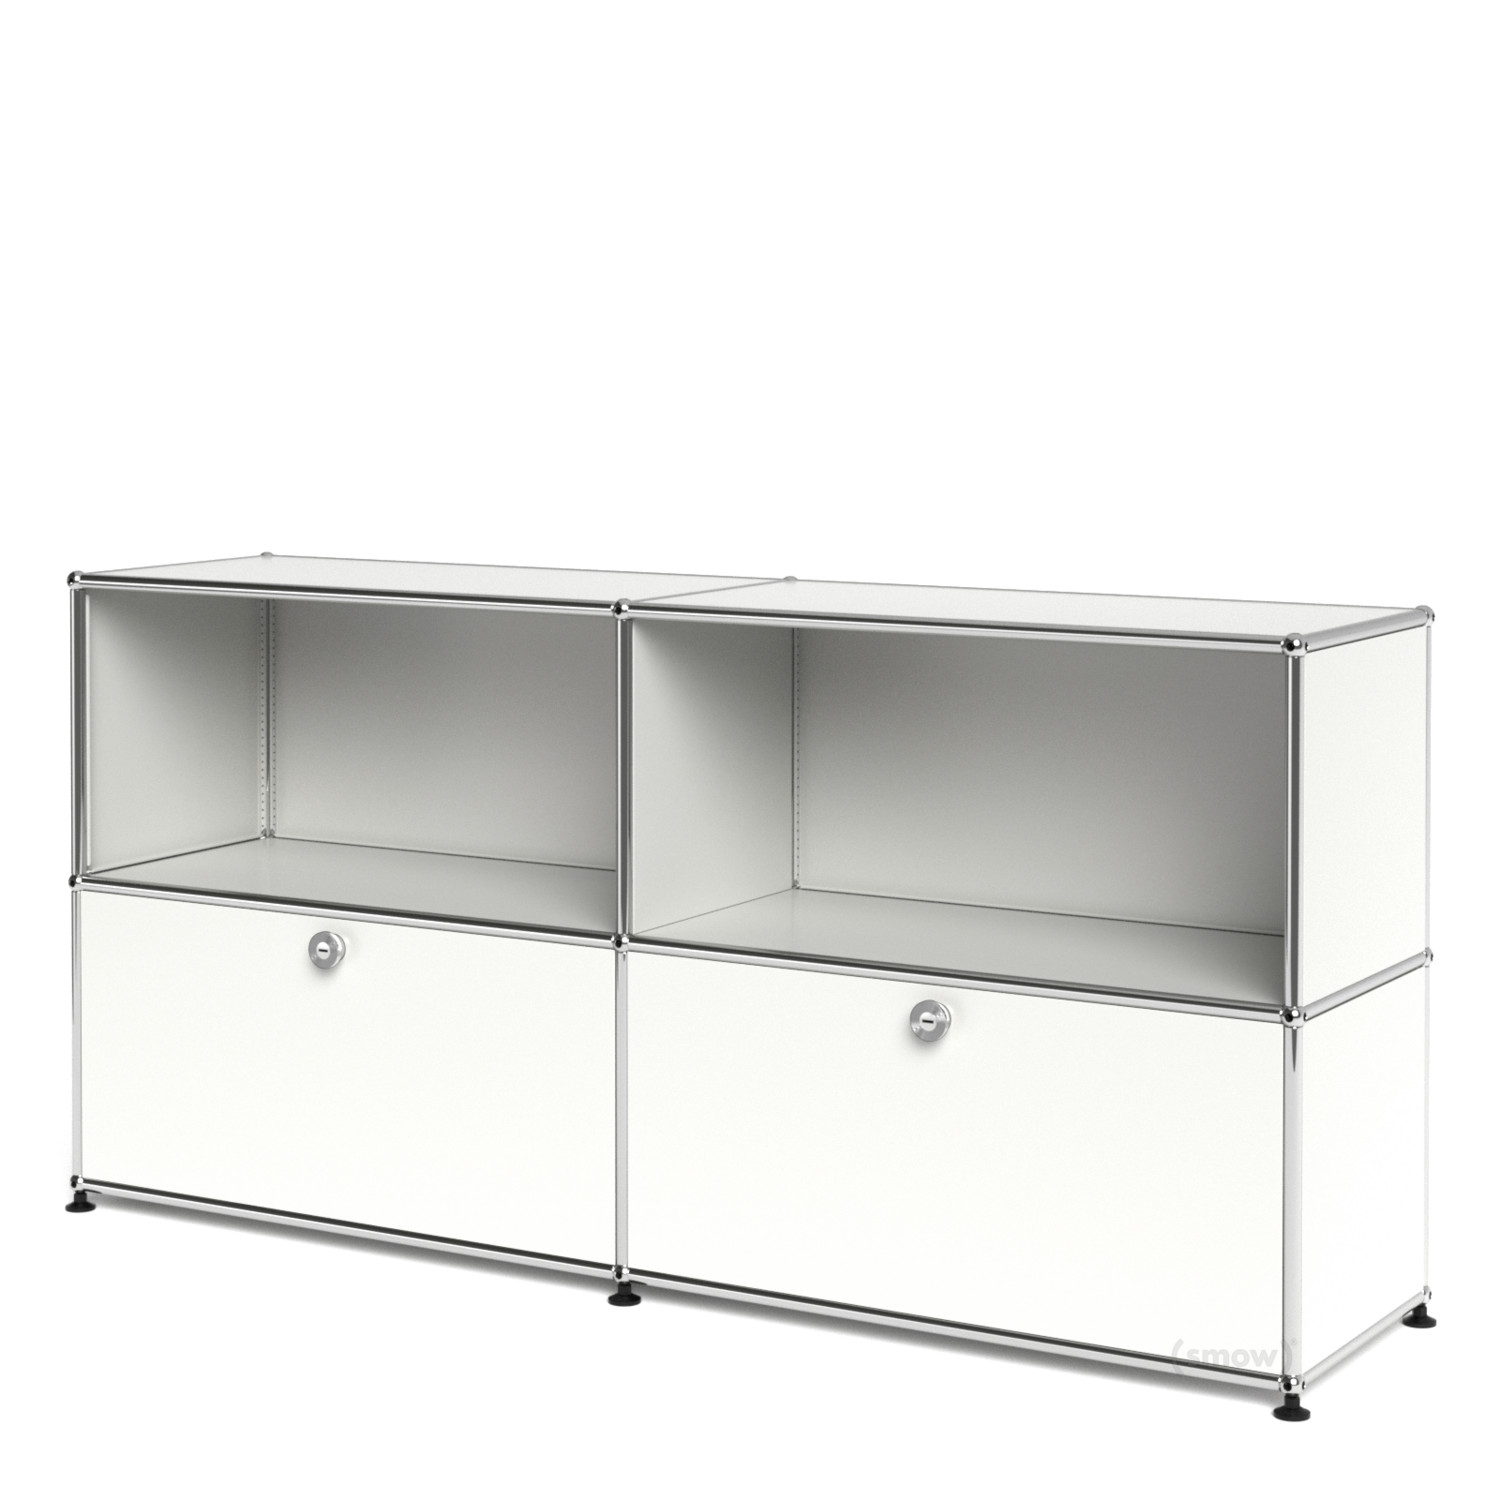 usm haller sideboard l with 2 drop down doors pure white. Black Bedroom Furniture Sets. Home Design Ideas